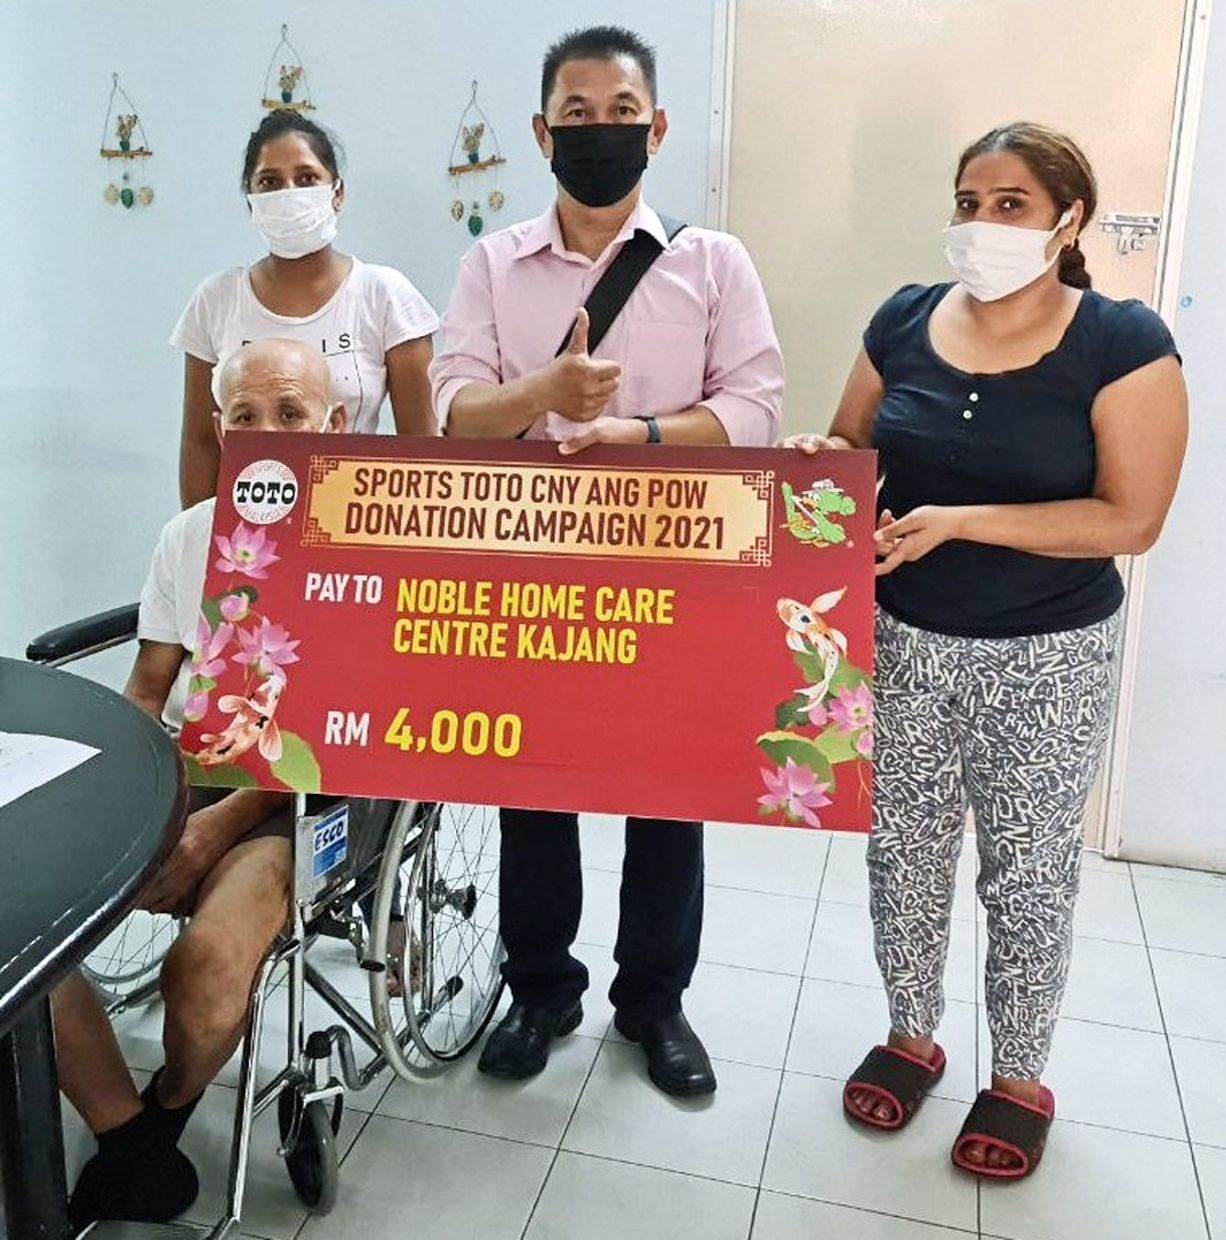 Noble Home Care Centre Kajang person-in-charge Tania Amanat (right) receiving a contribution from Sports Toto representative Mohd Rafiee Rashid (centre).